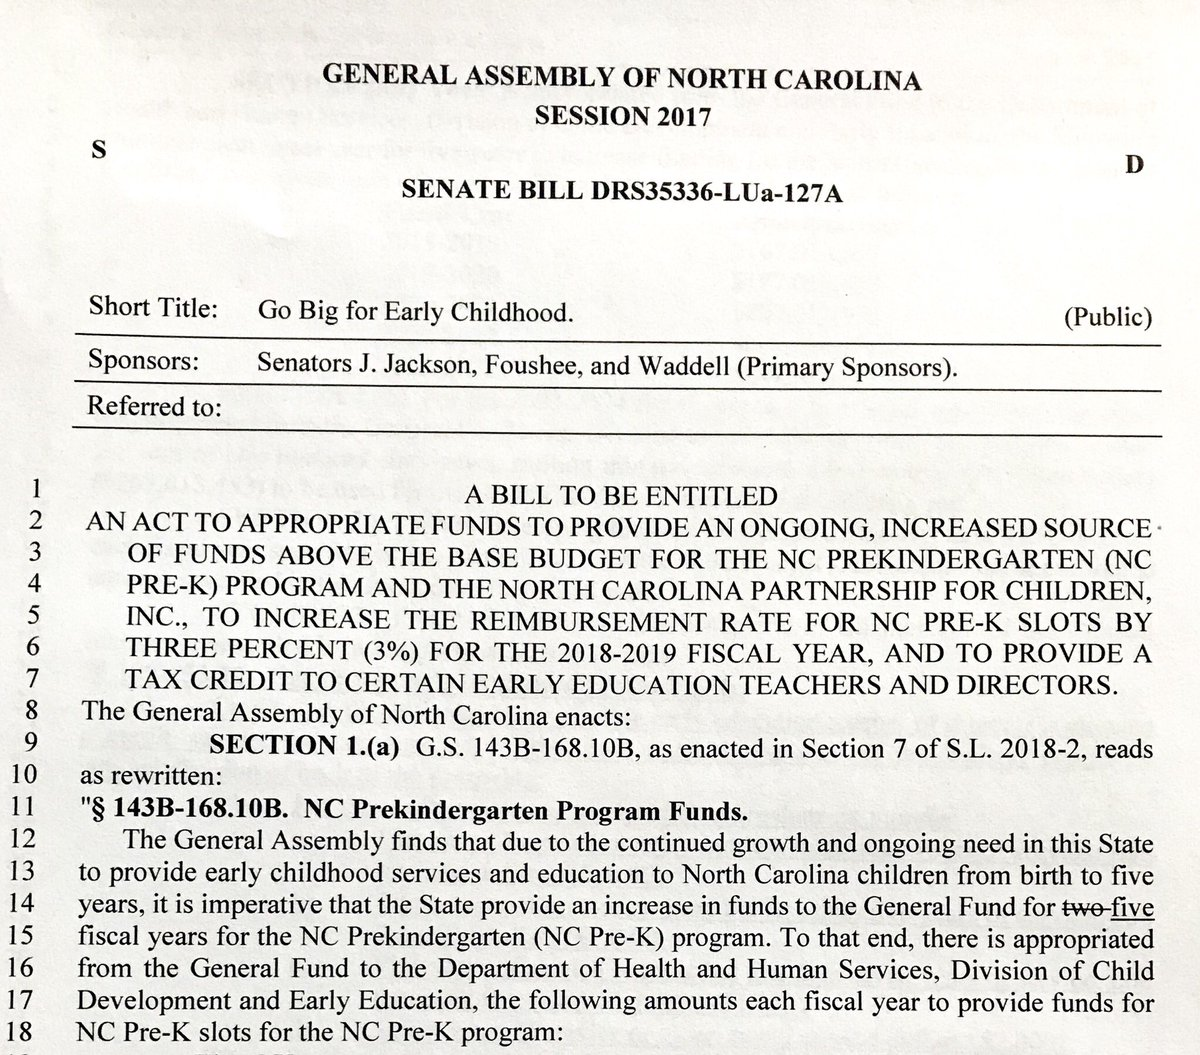 Just filed my first bill of the year: Go Big for Early Childhood.   It takes our funding for early childhood education from 1% of our budget to 2% over the next five years and will let us reach tens of thousands more young children.  #ncpol #ncga #nced #clt<br>http://pic.twitter.com/sTUNqUfvZ3